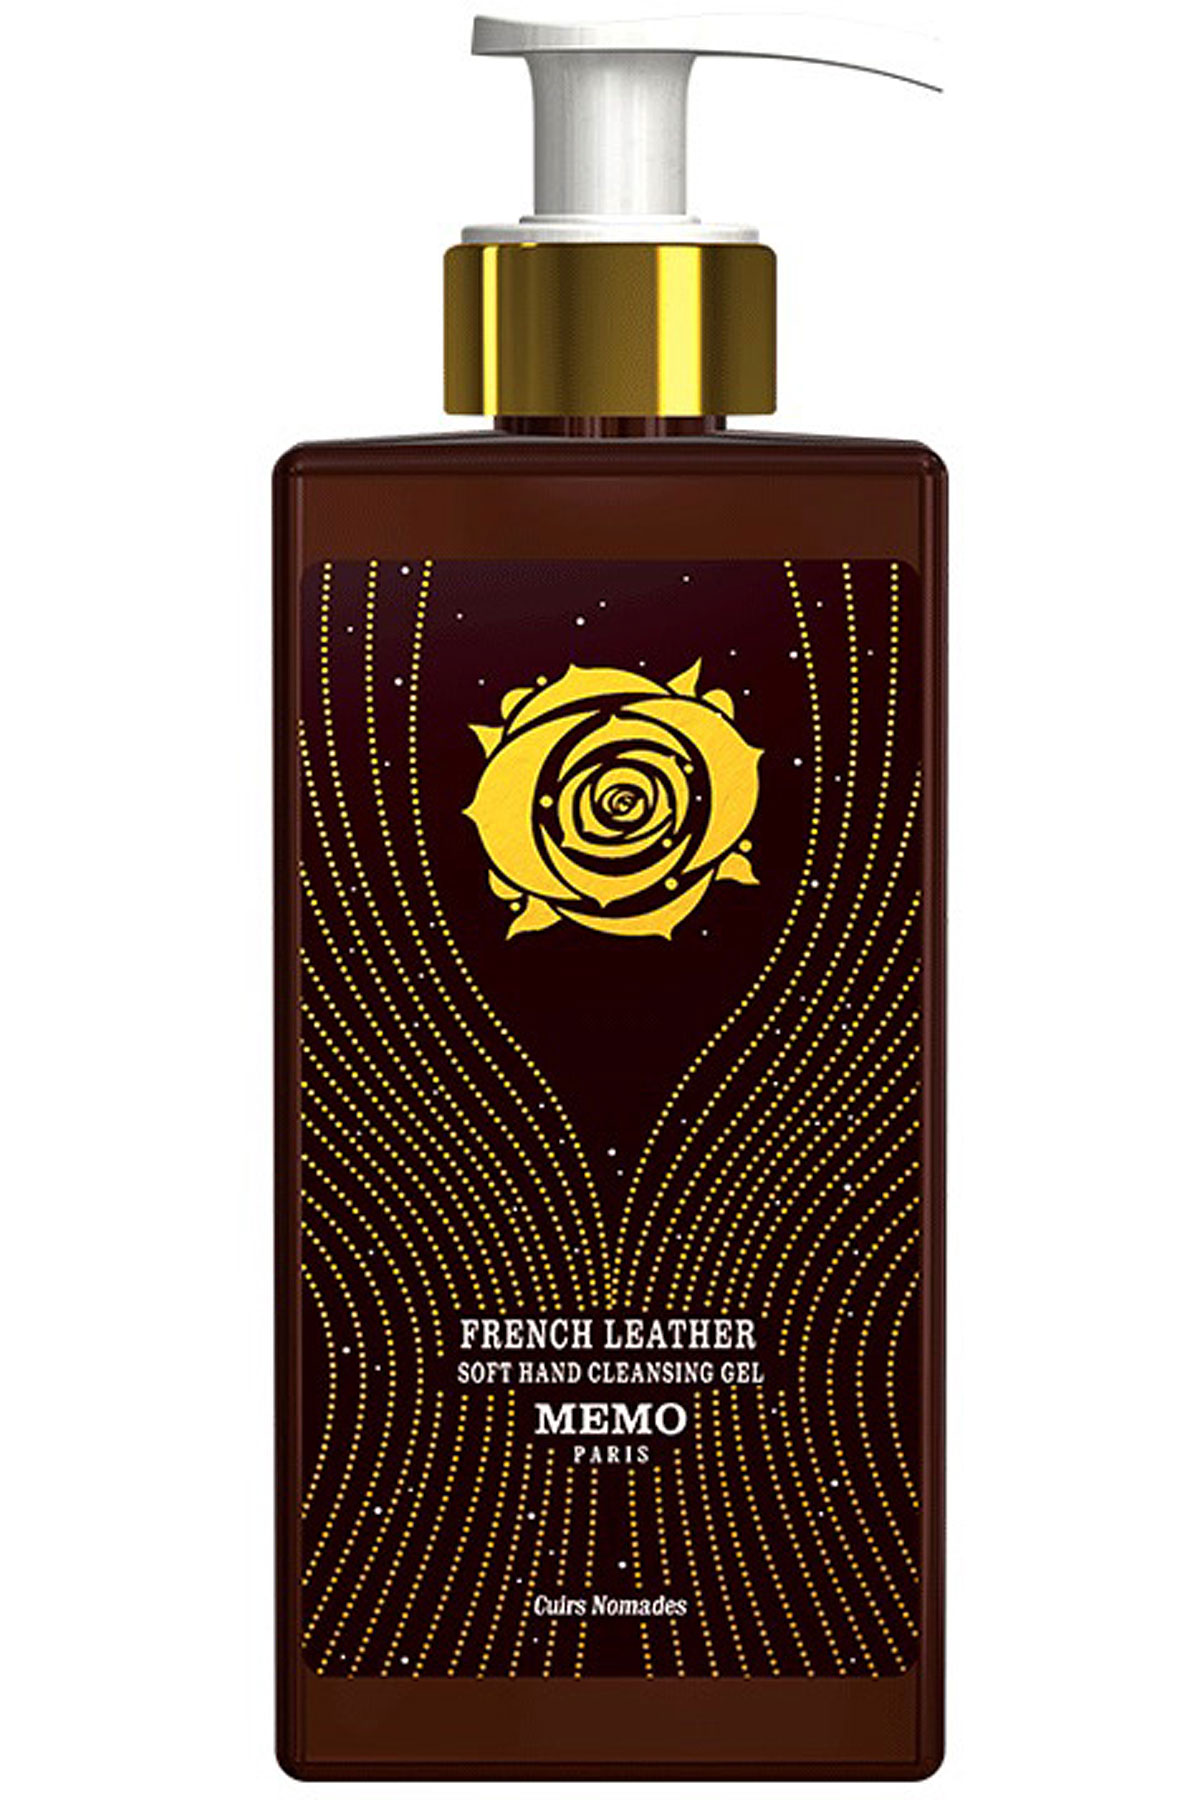 Memo Paris Beauty for Women, French Leather - Soft Hand Cleansing Gel - 250 Ml, 2019, 250 ml